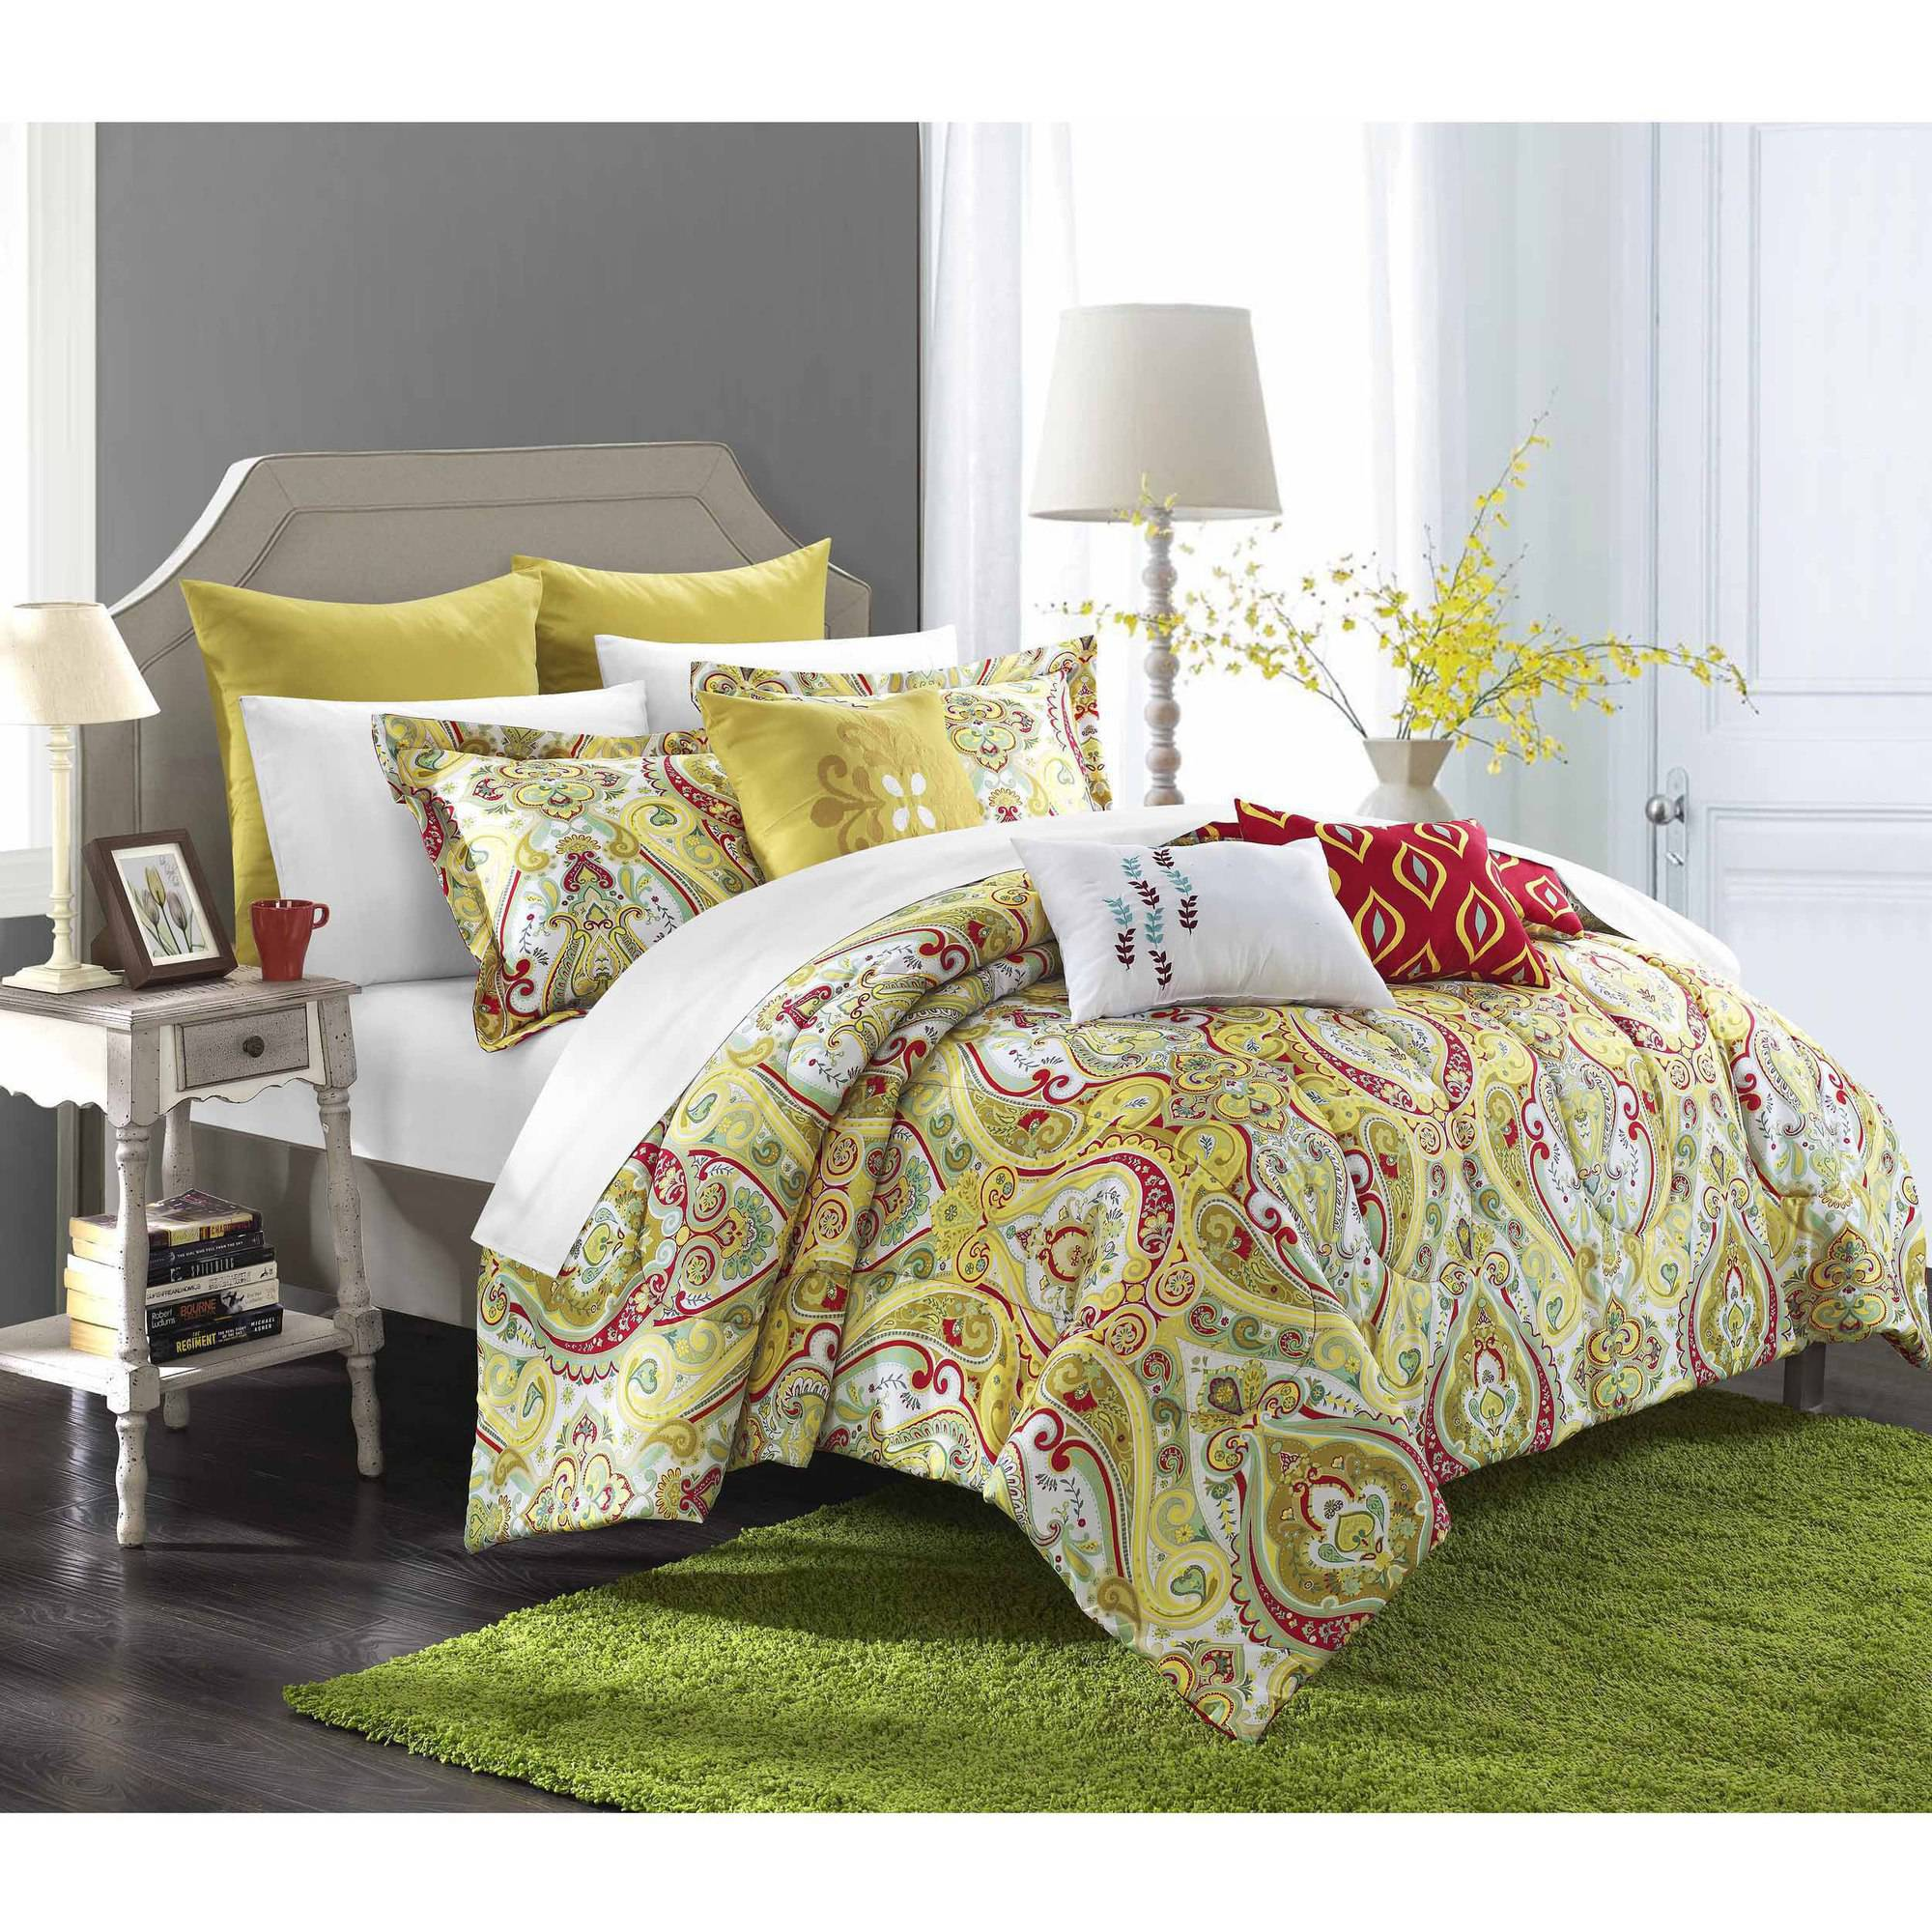 Chic Home Paisley Global Inspi 12-Piece Bombay Reversible Comforter Set